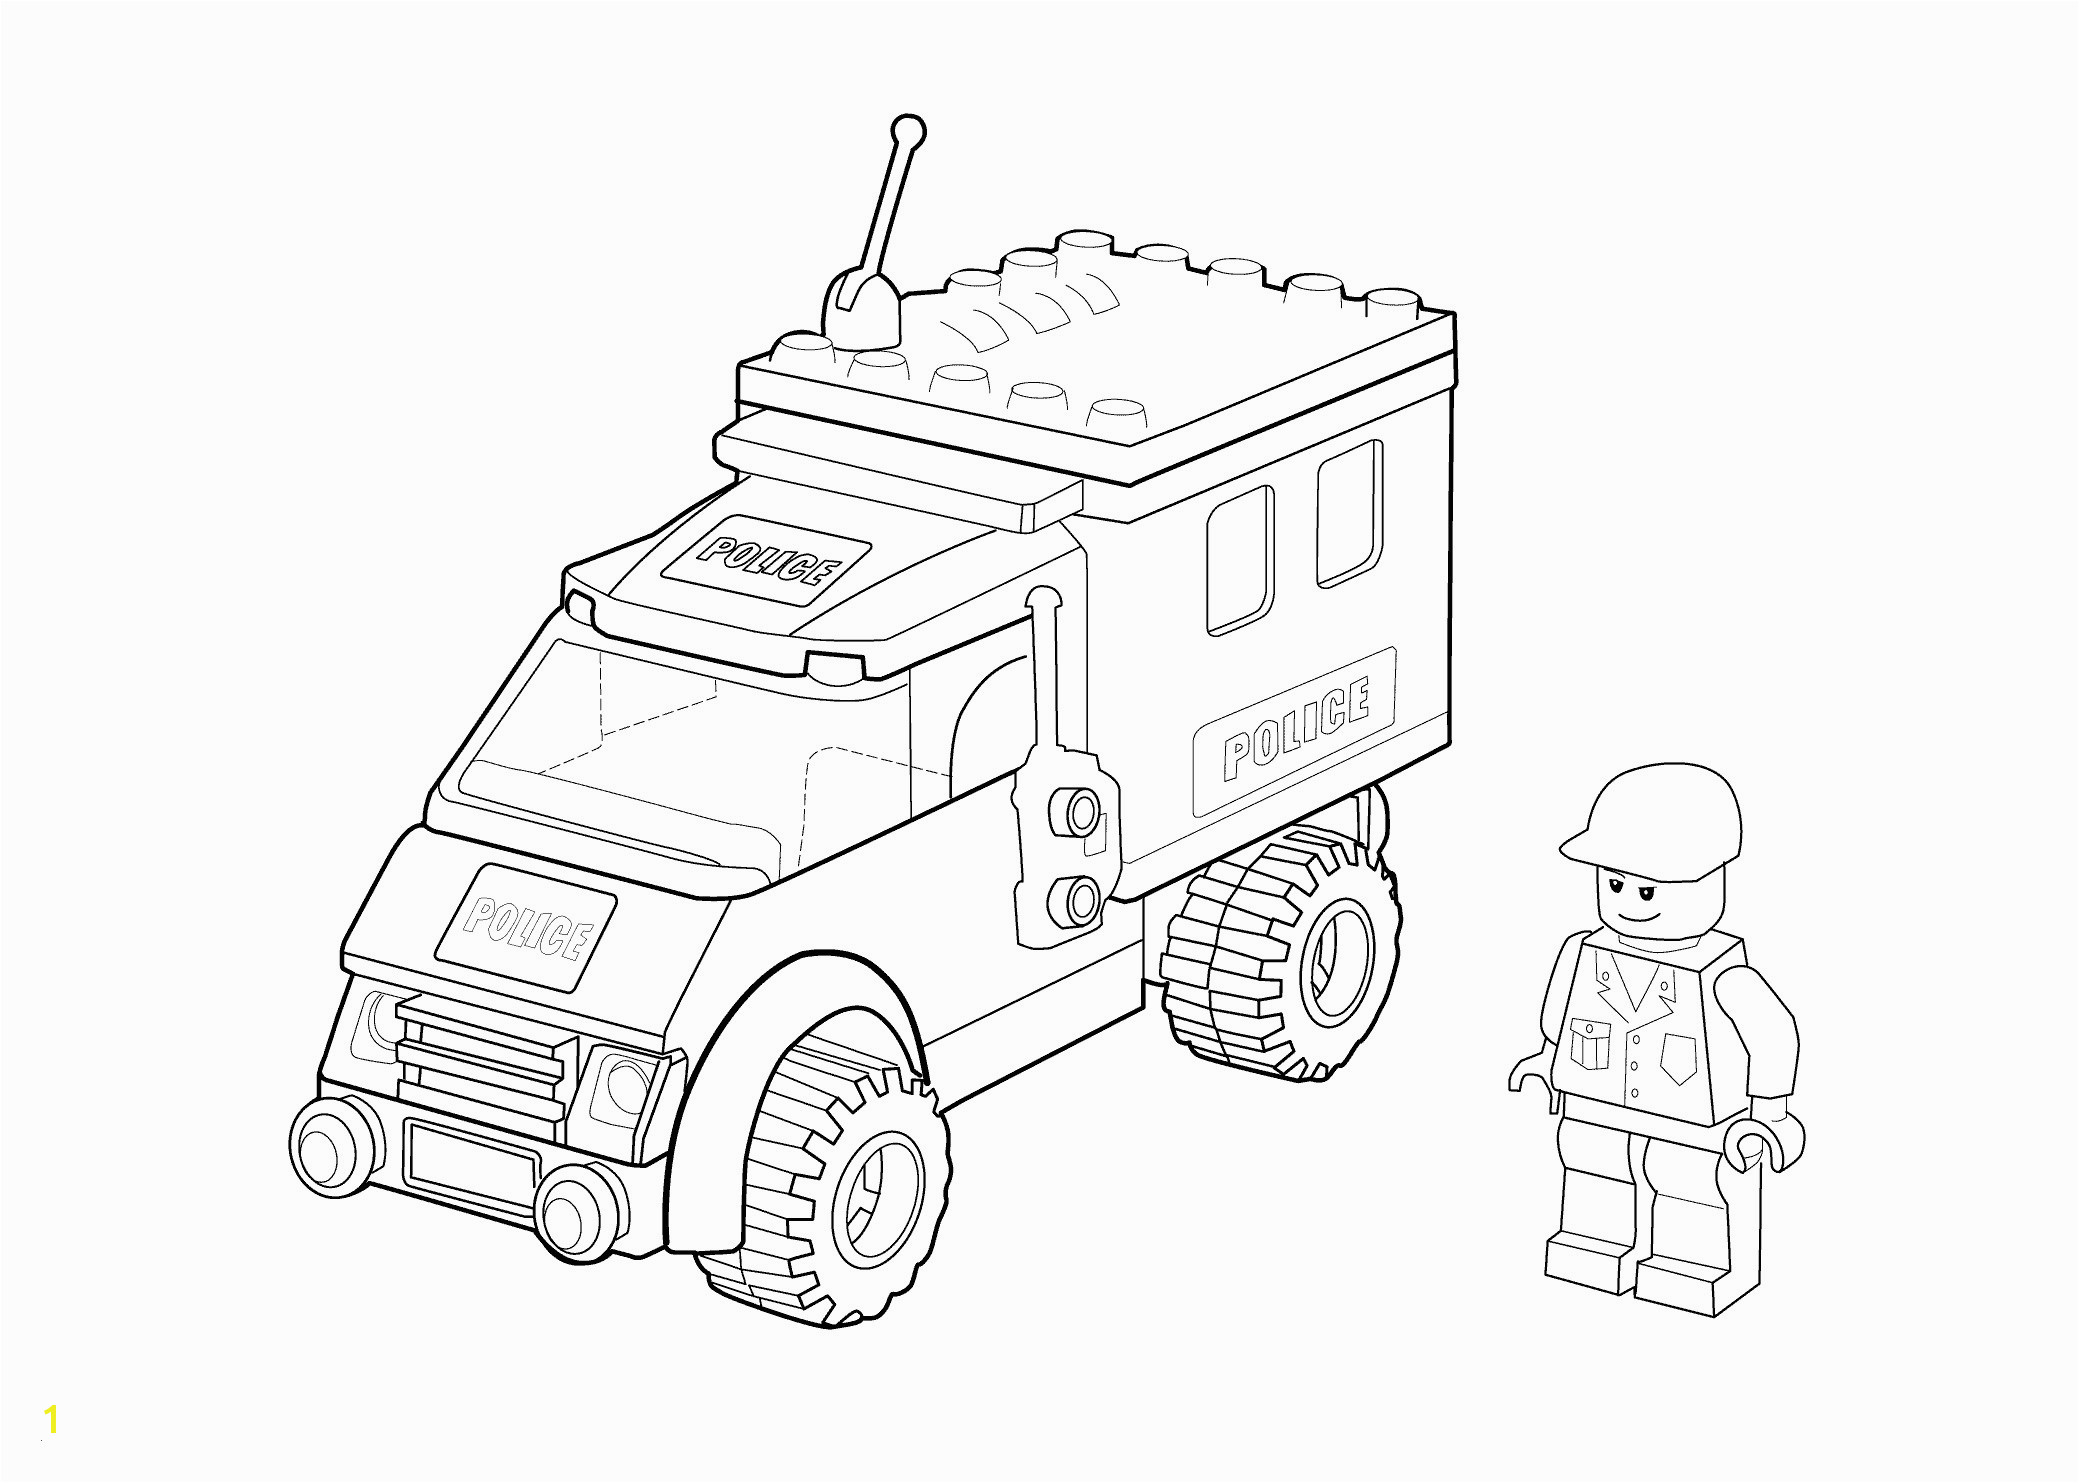 Swat Team Coloring Pages Police Car Coloring Pages New Swat Team Coloring Pages Awesome